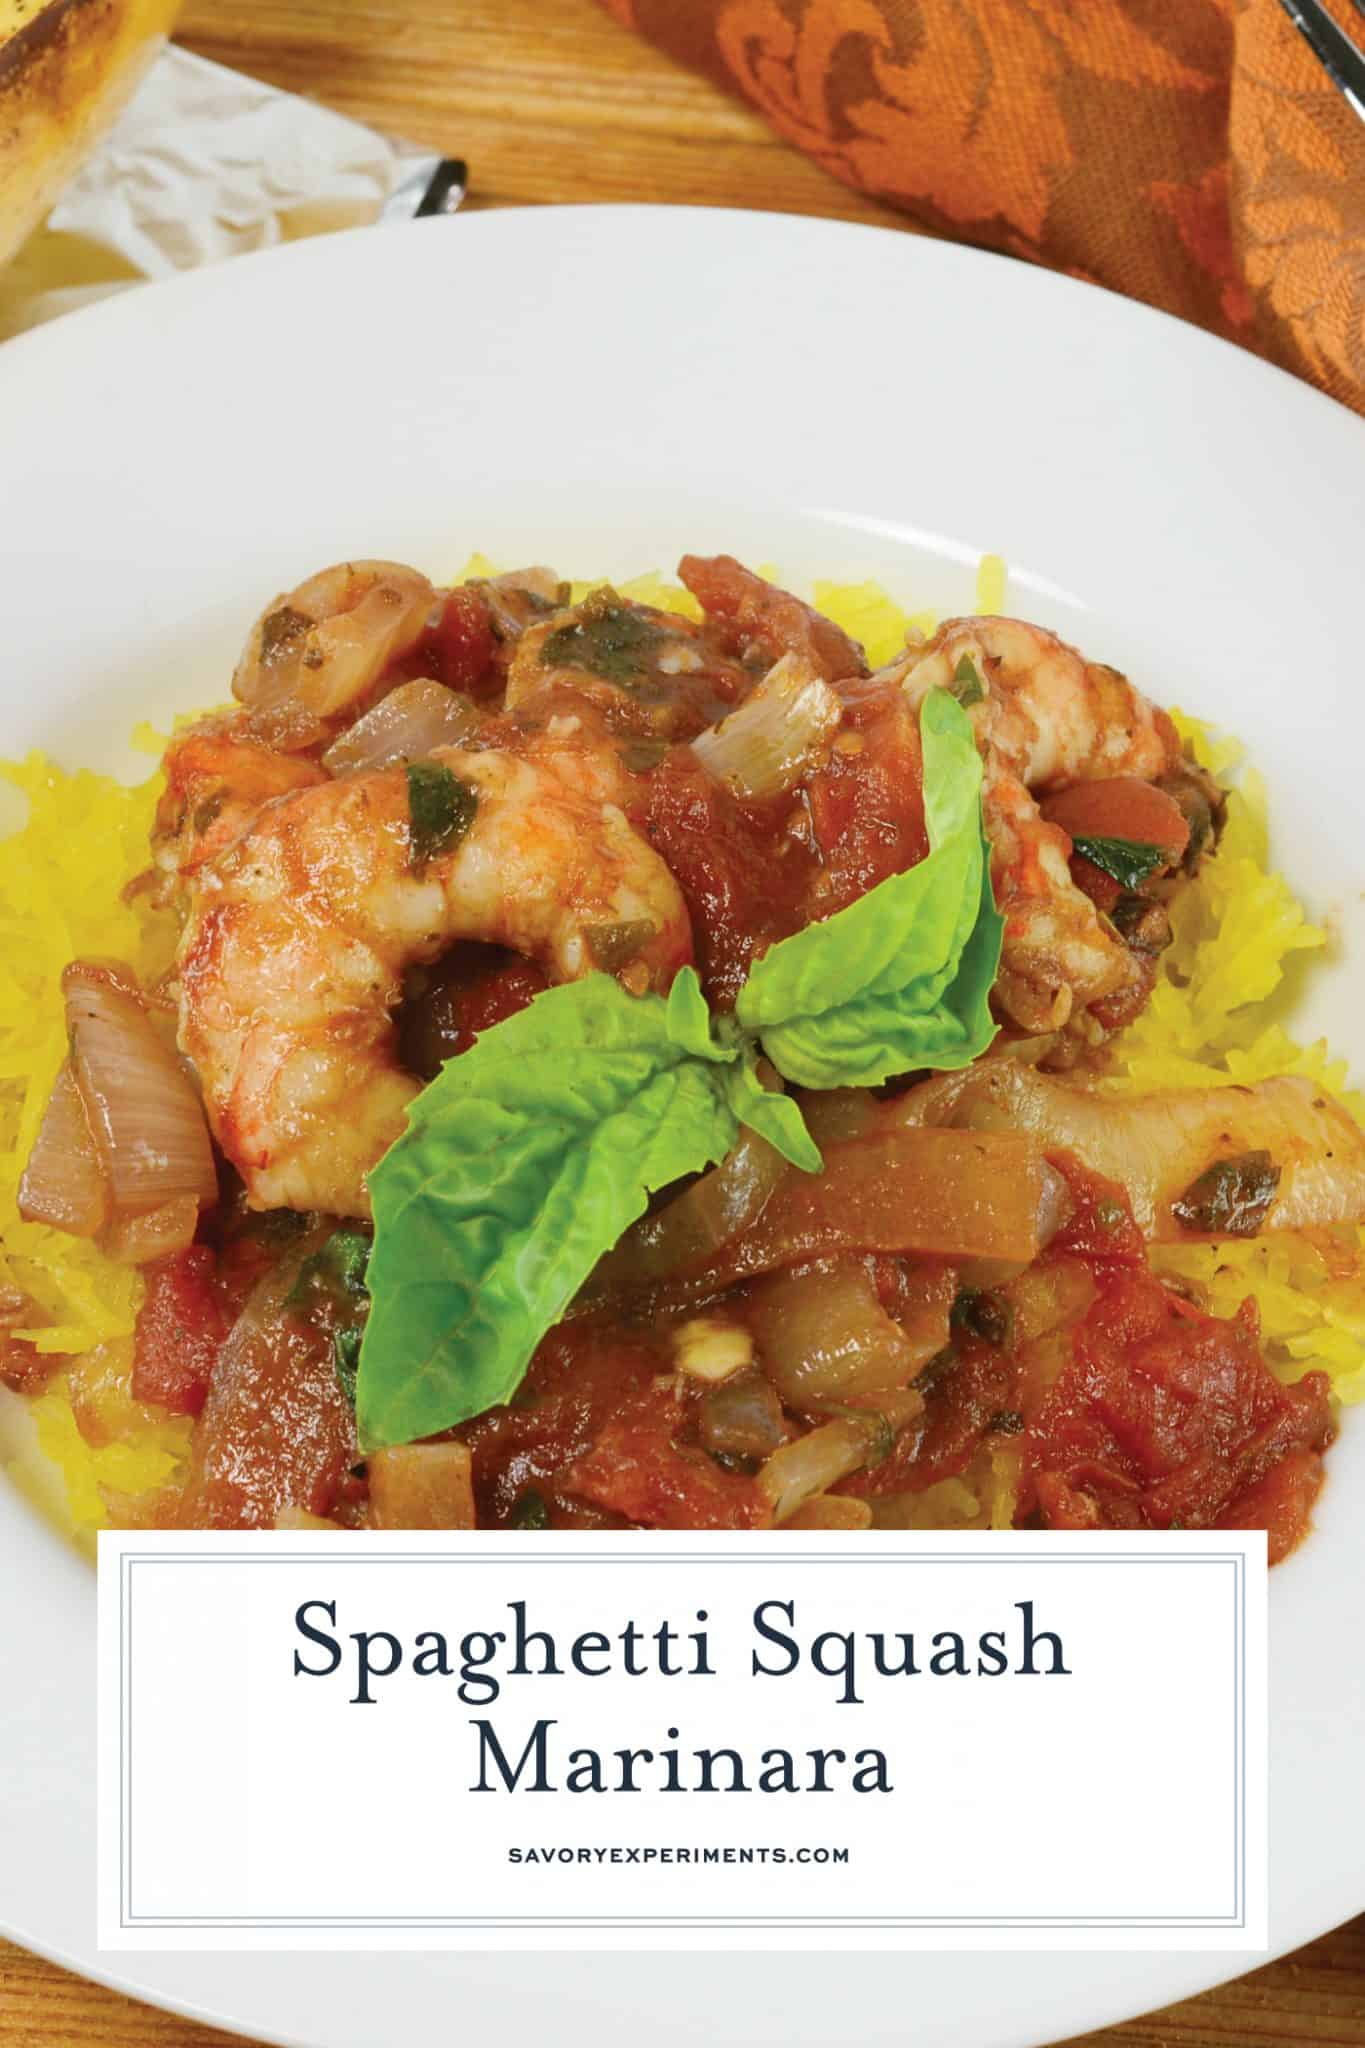 Baked Spaghetti Squash Marinara is a healthier alternative to pasta and tomato sauce! One of the best spaghetti squash recipes since it's packed full of flavor! #spaghettisquash #spaghettisquashrecipes www.savoryexperiments.com